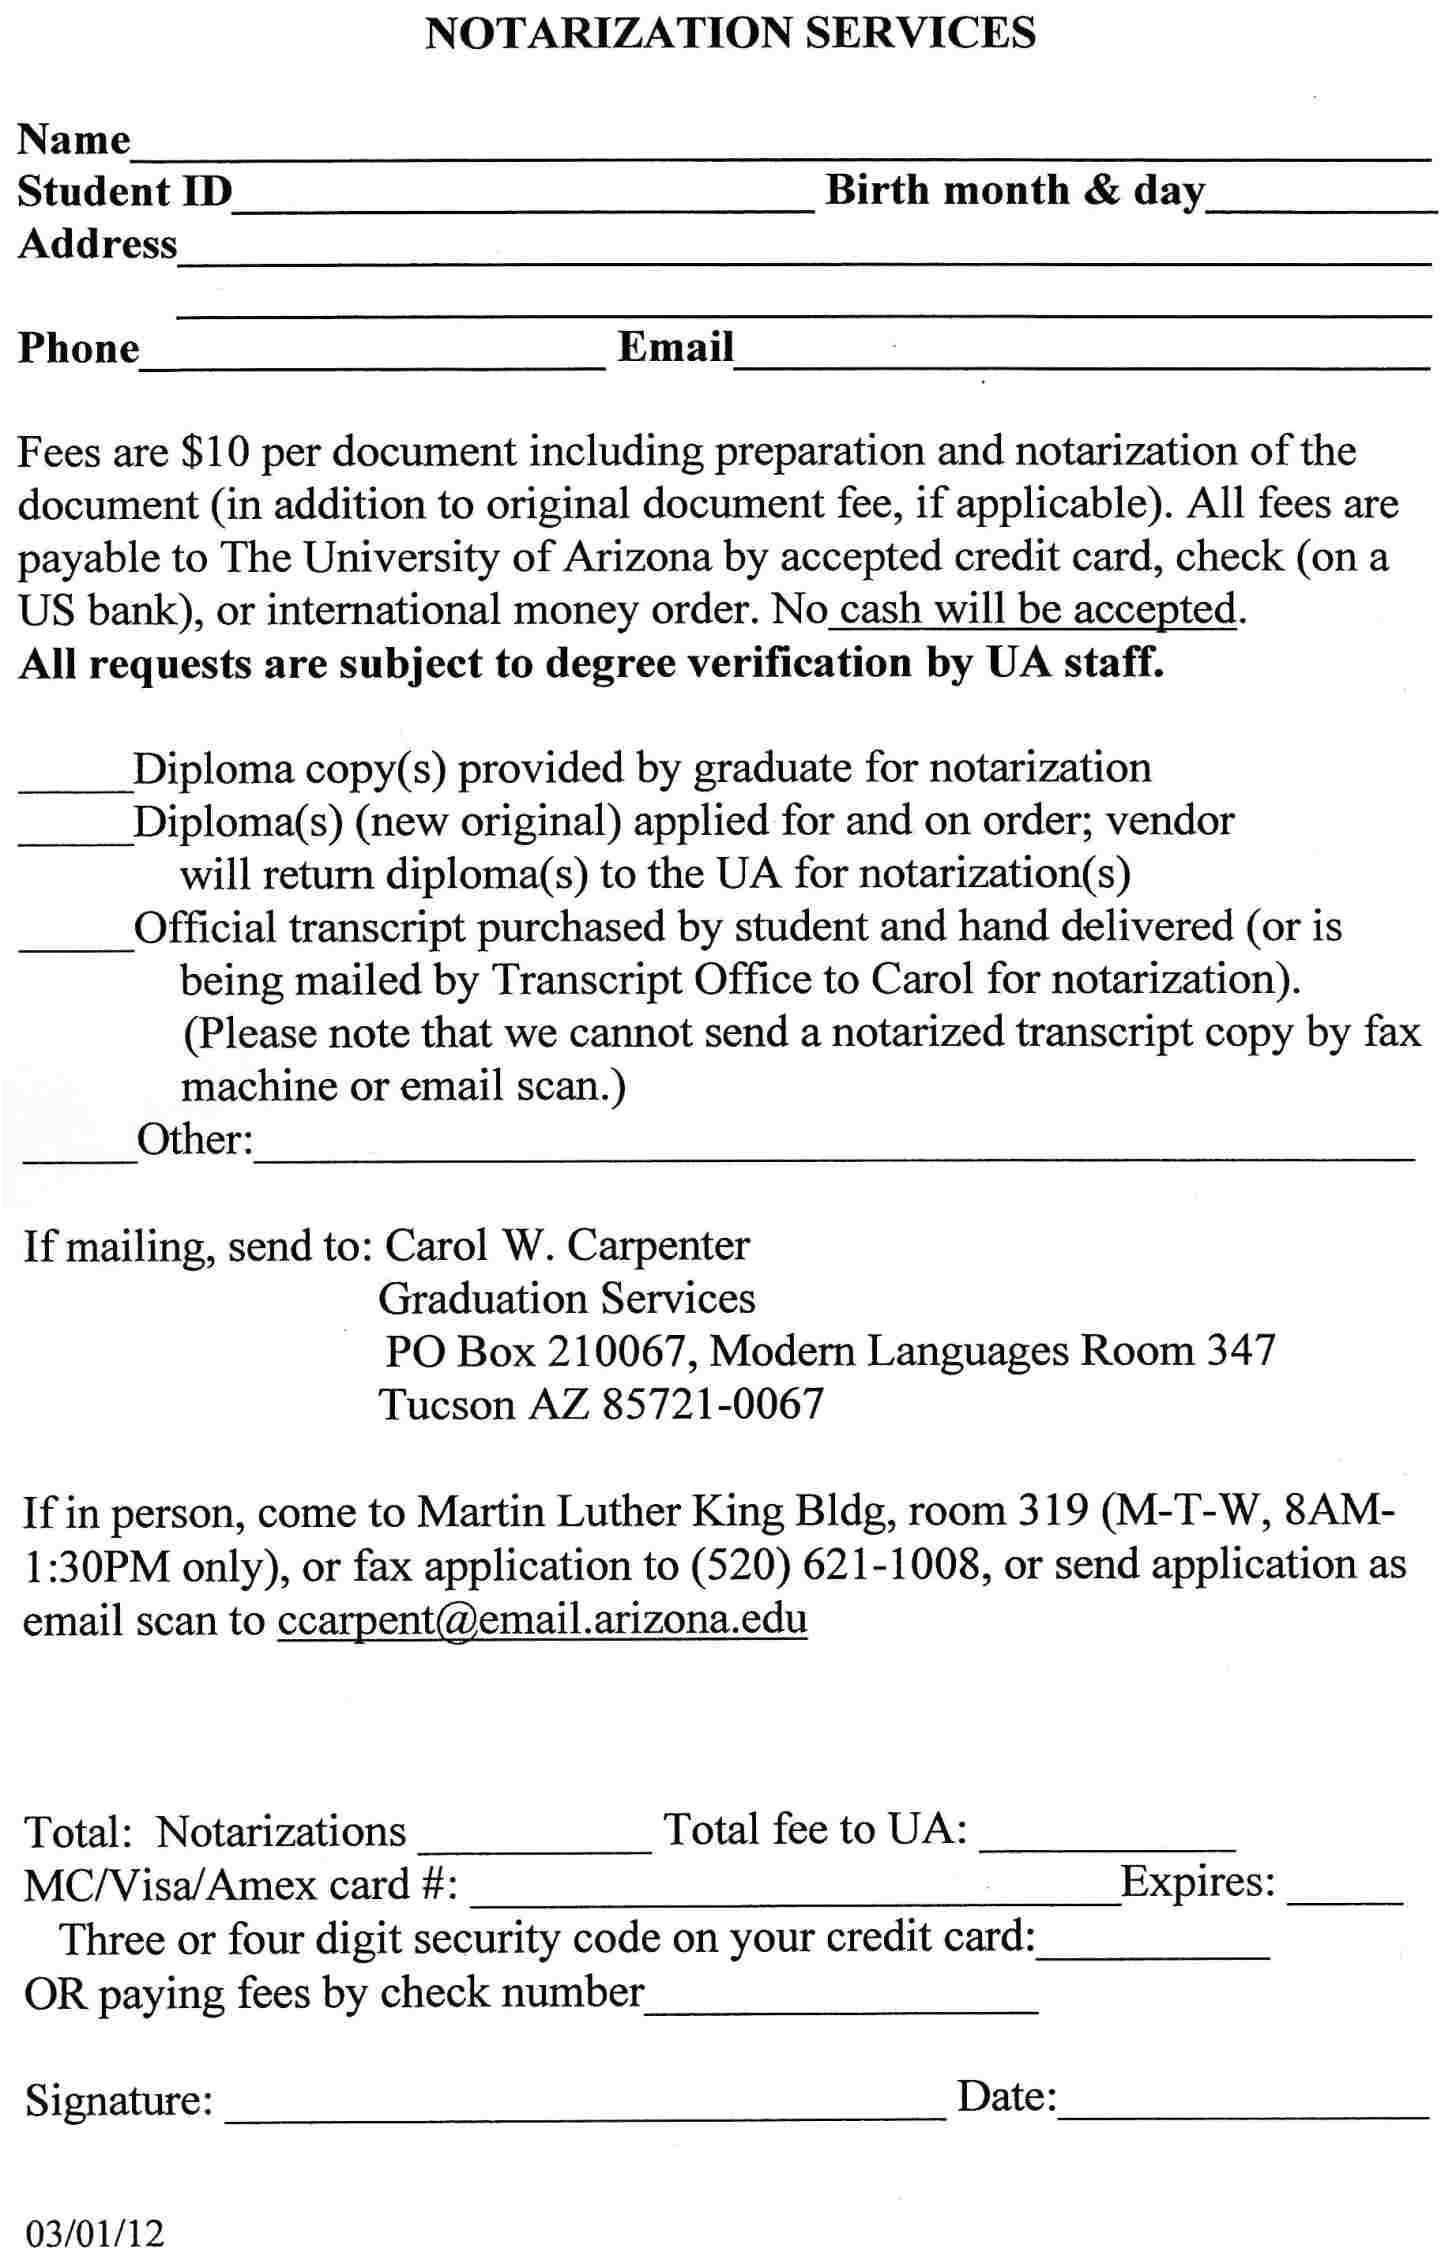 state department authentication cover letter